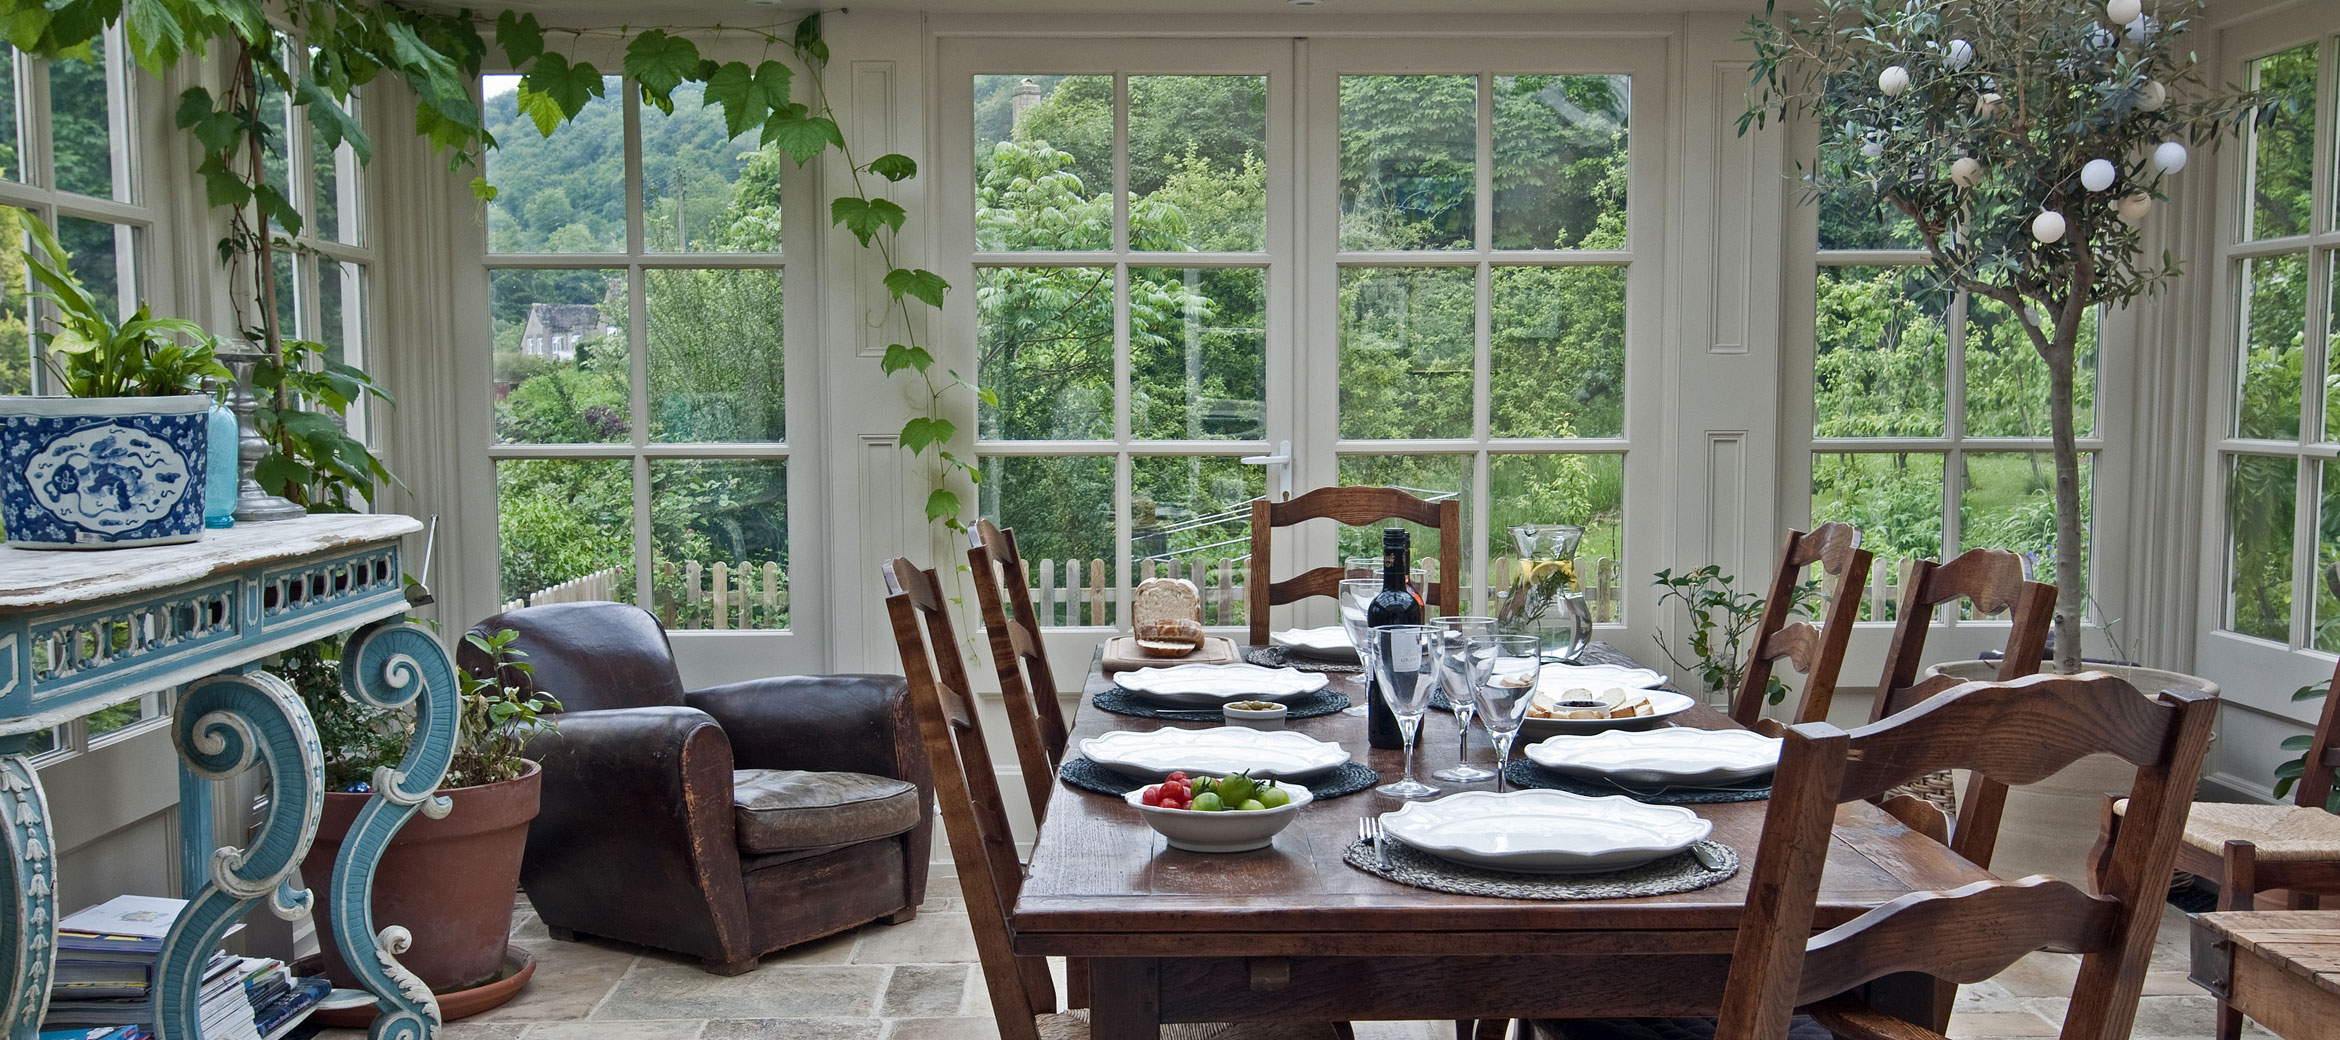 sheepscombe-house-conservatory-dining-room